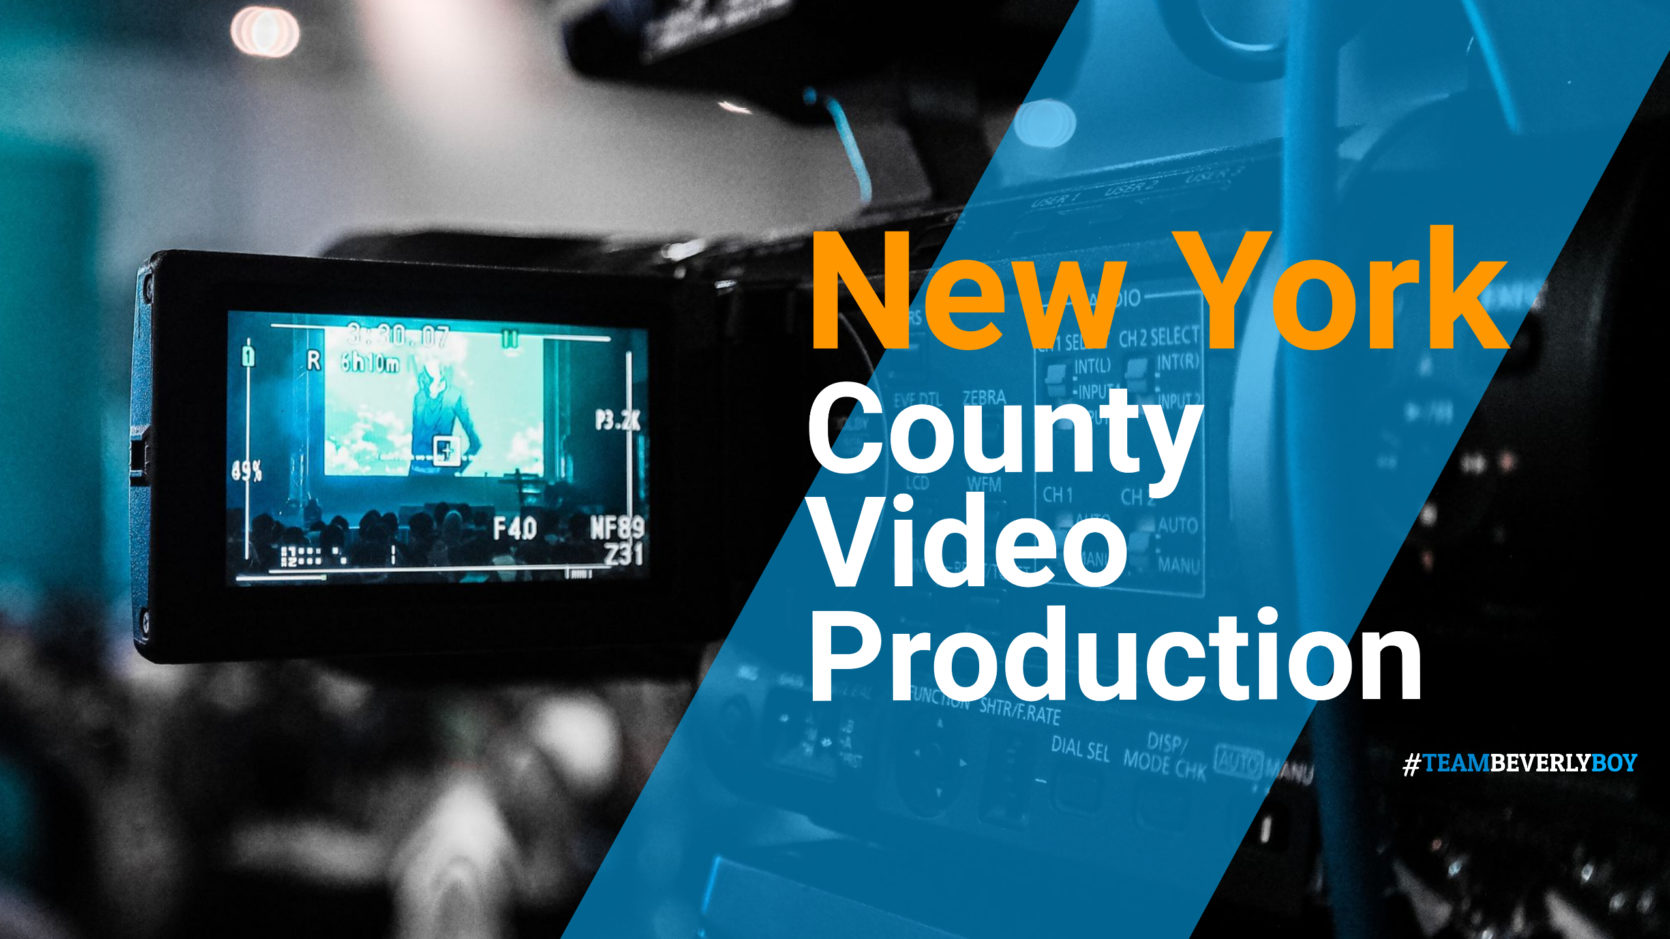 New York County Video Production